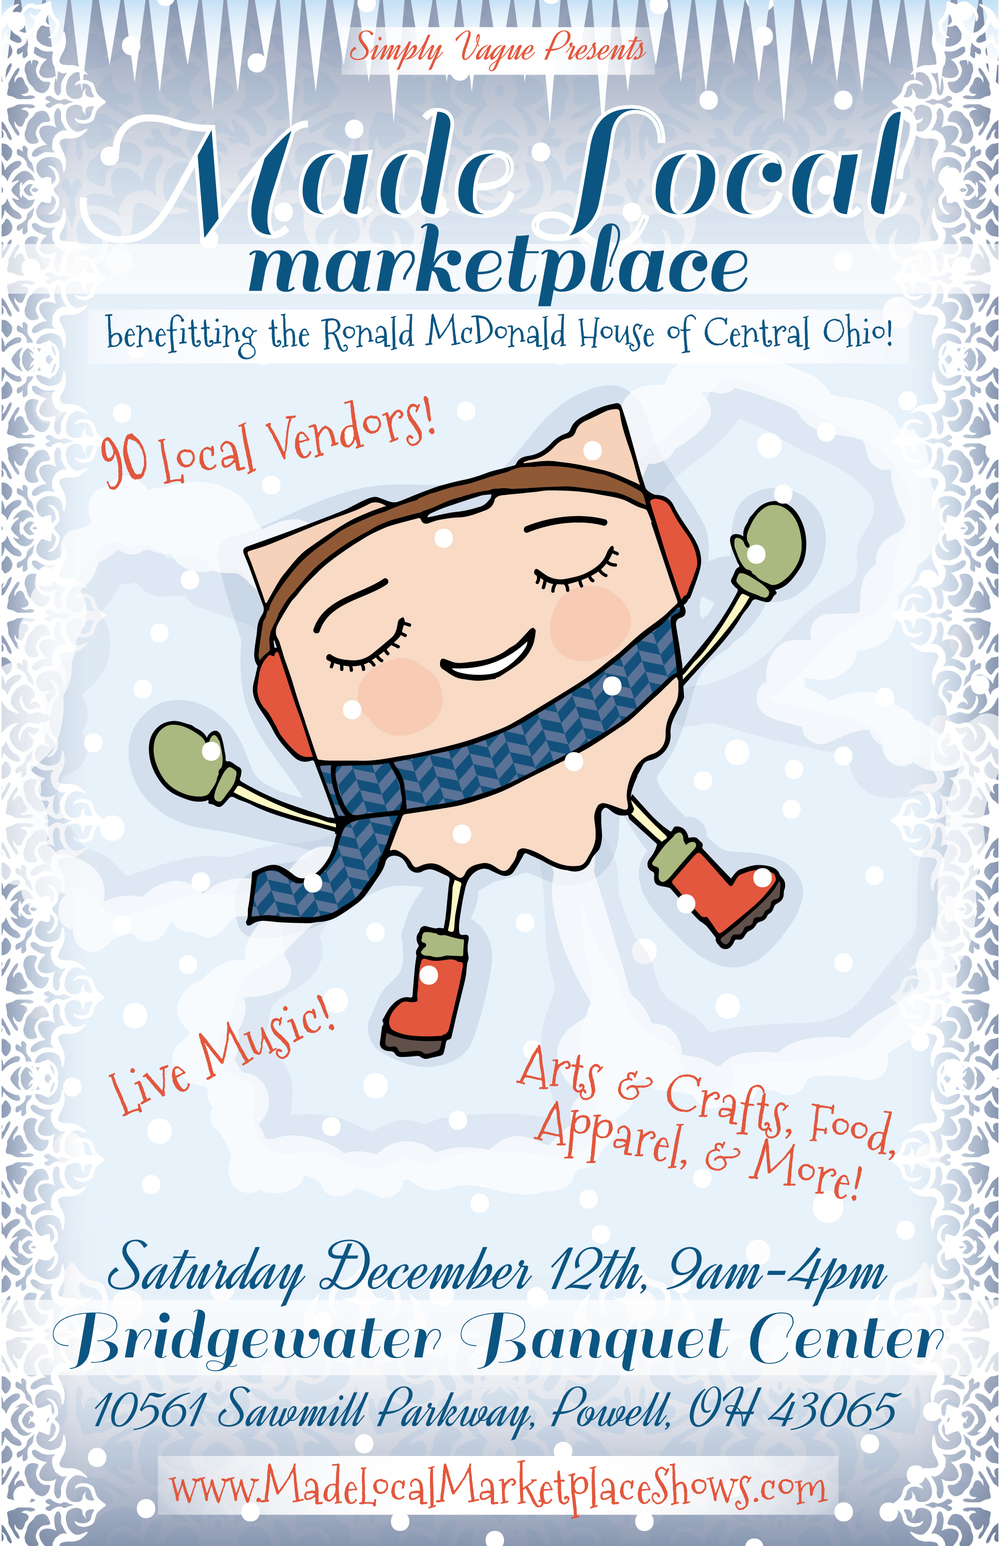 Poster Design for the Made Local Marketplace Holiday Show 2015